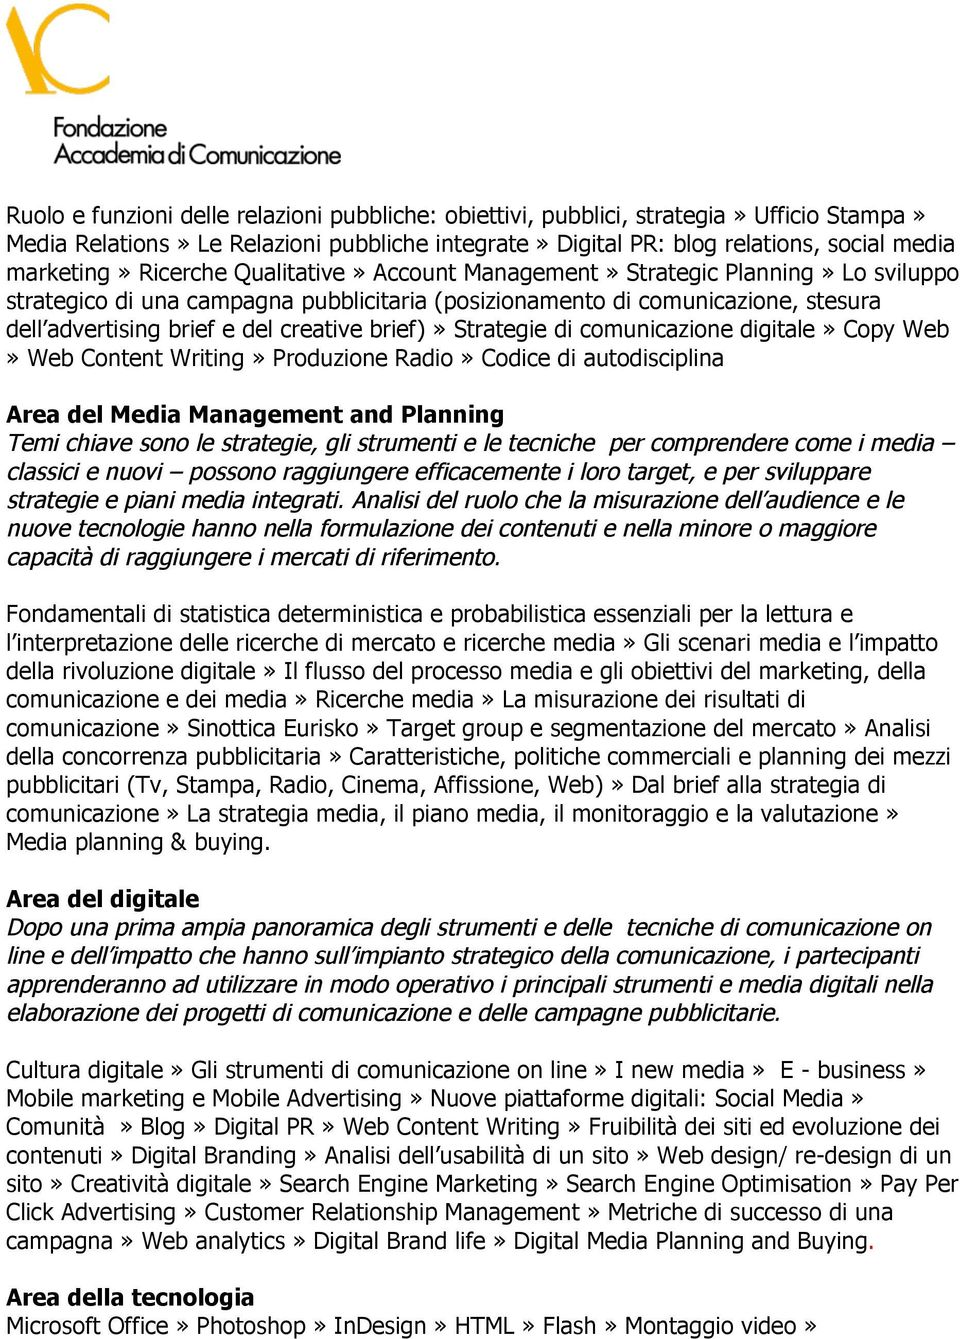 brief)» Strategie di comunicazione digitale» Copy Web» Web Content Writing» Produzione Radio» Codice di autodisciplina Area del Media Management and Planning Temi chiave sono le strategie, gli